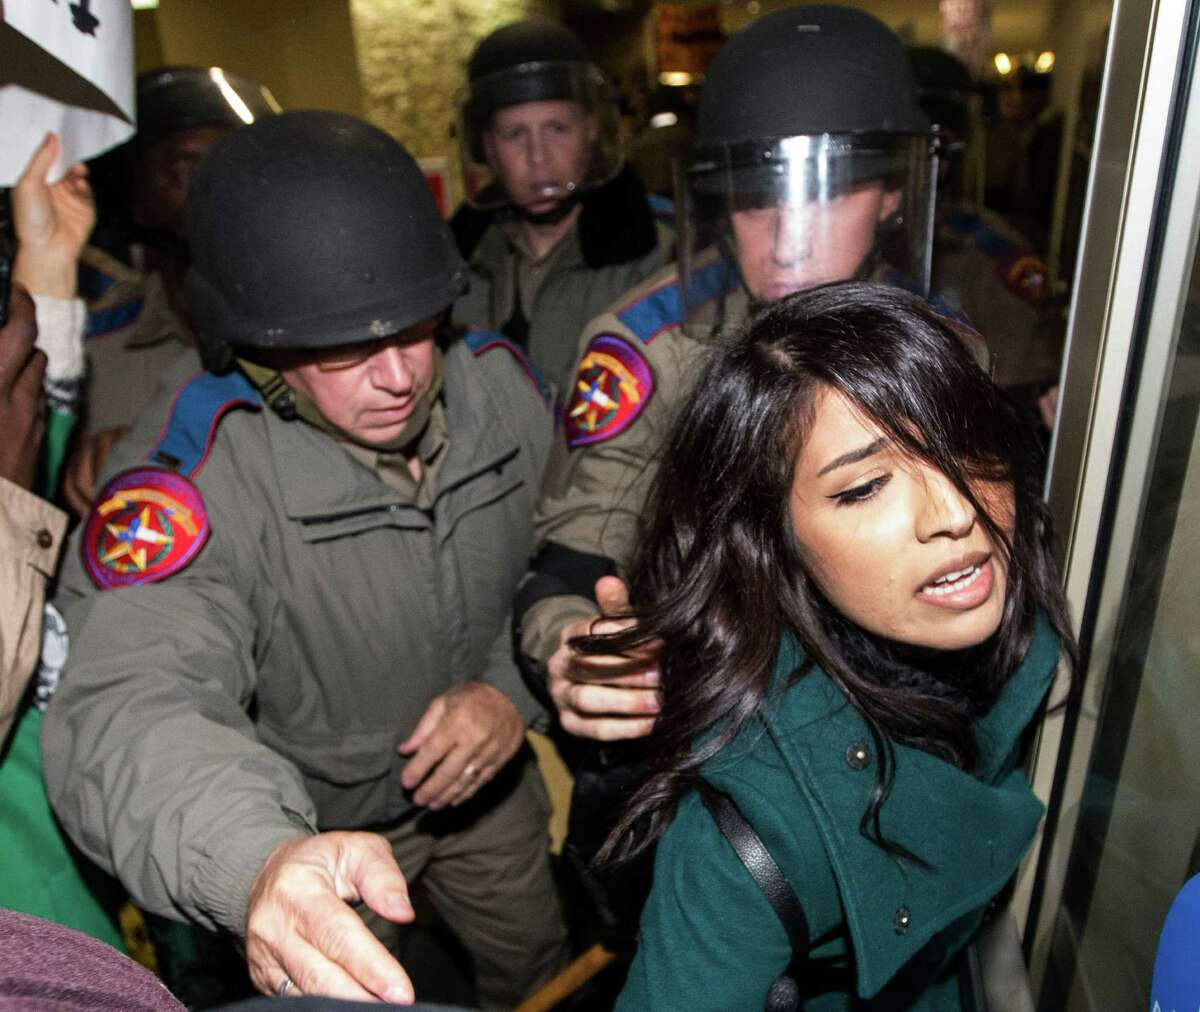 A woman is taken into custody as law enforcement officers push protesters out of the Texas A&M Memorial Student Center during a protest against a speech on campus by White Nationalist Richard Spencer on Tuesday, Dec. 6, 2016, in College Station.